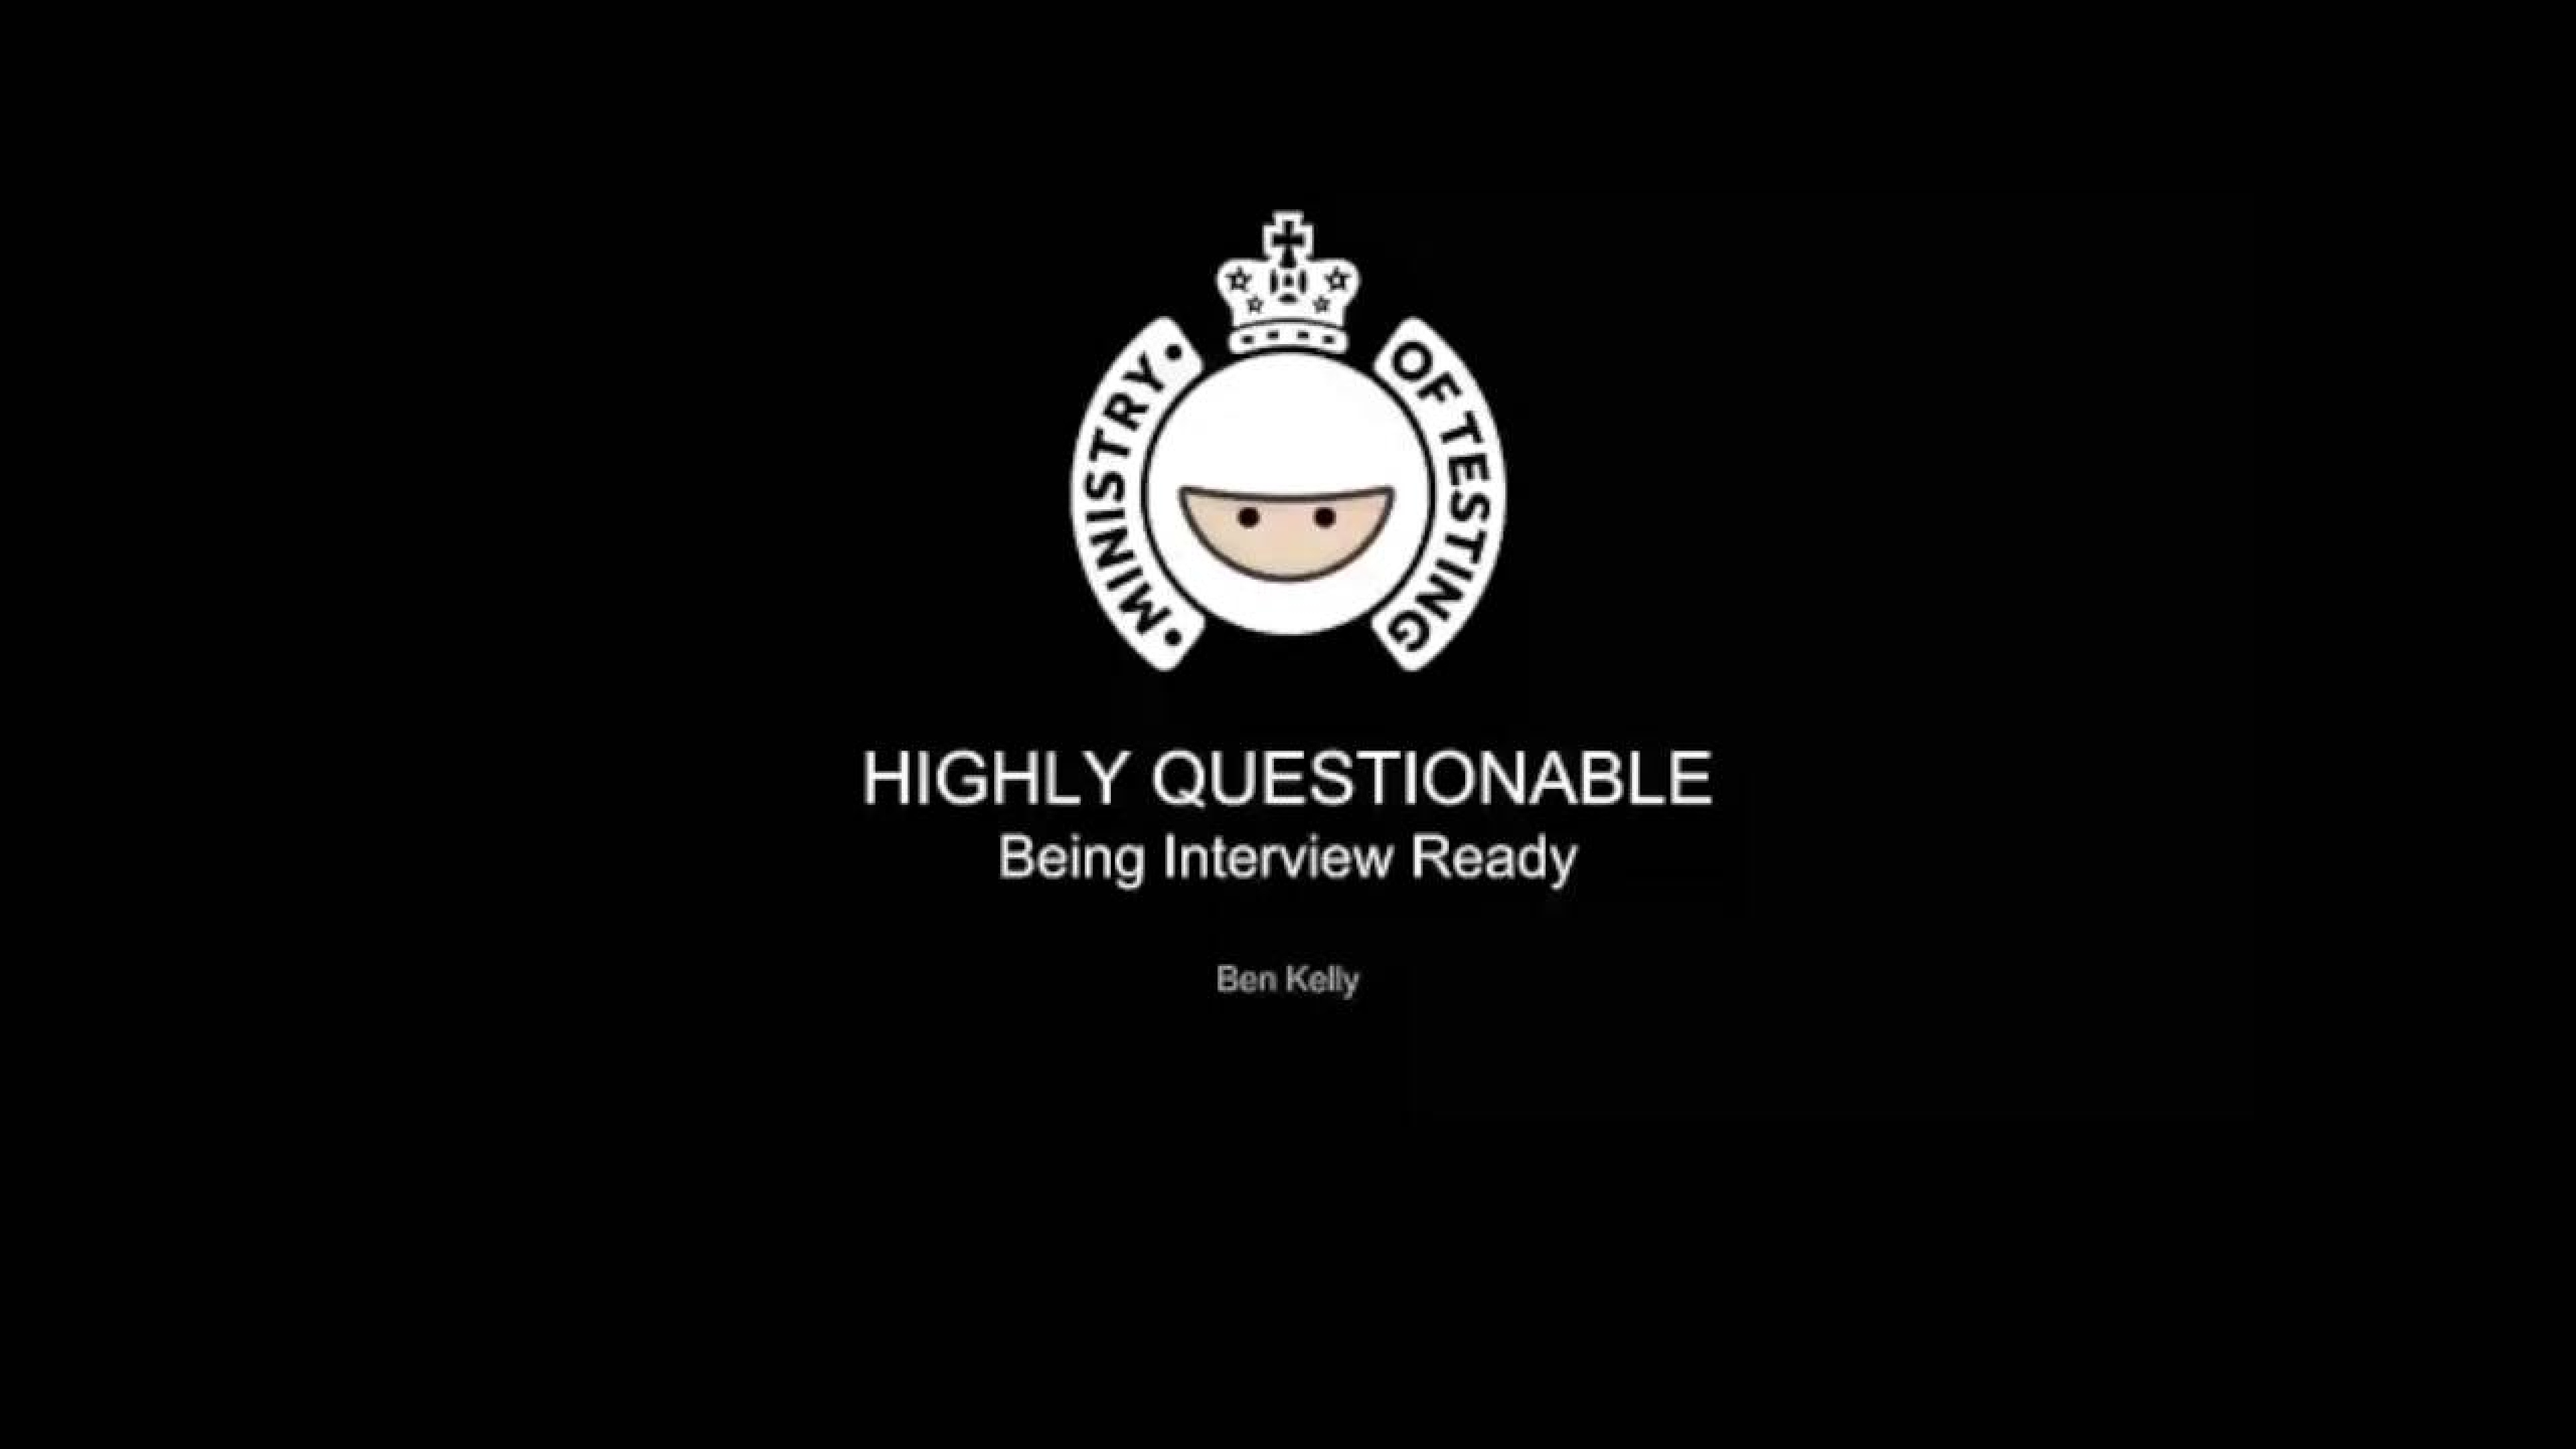 Highly Questionable - Being Interview Ready with Ben Kelly